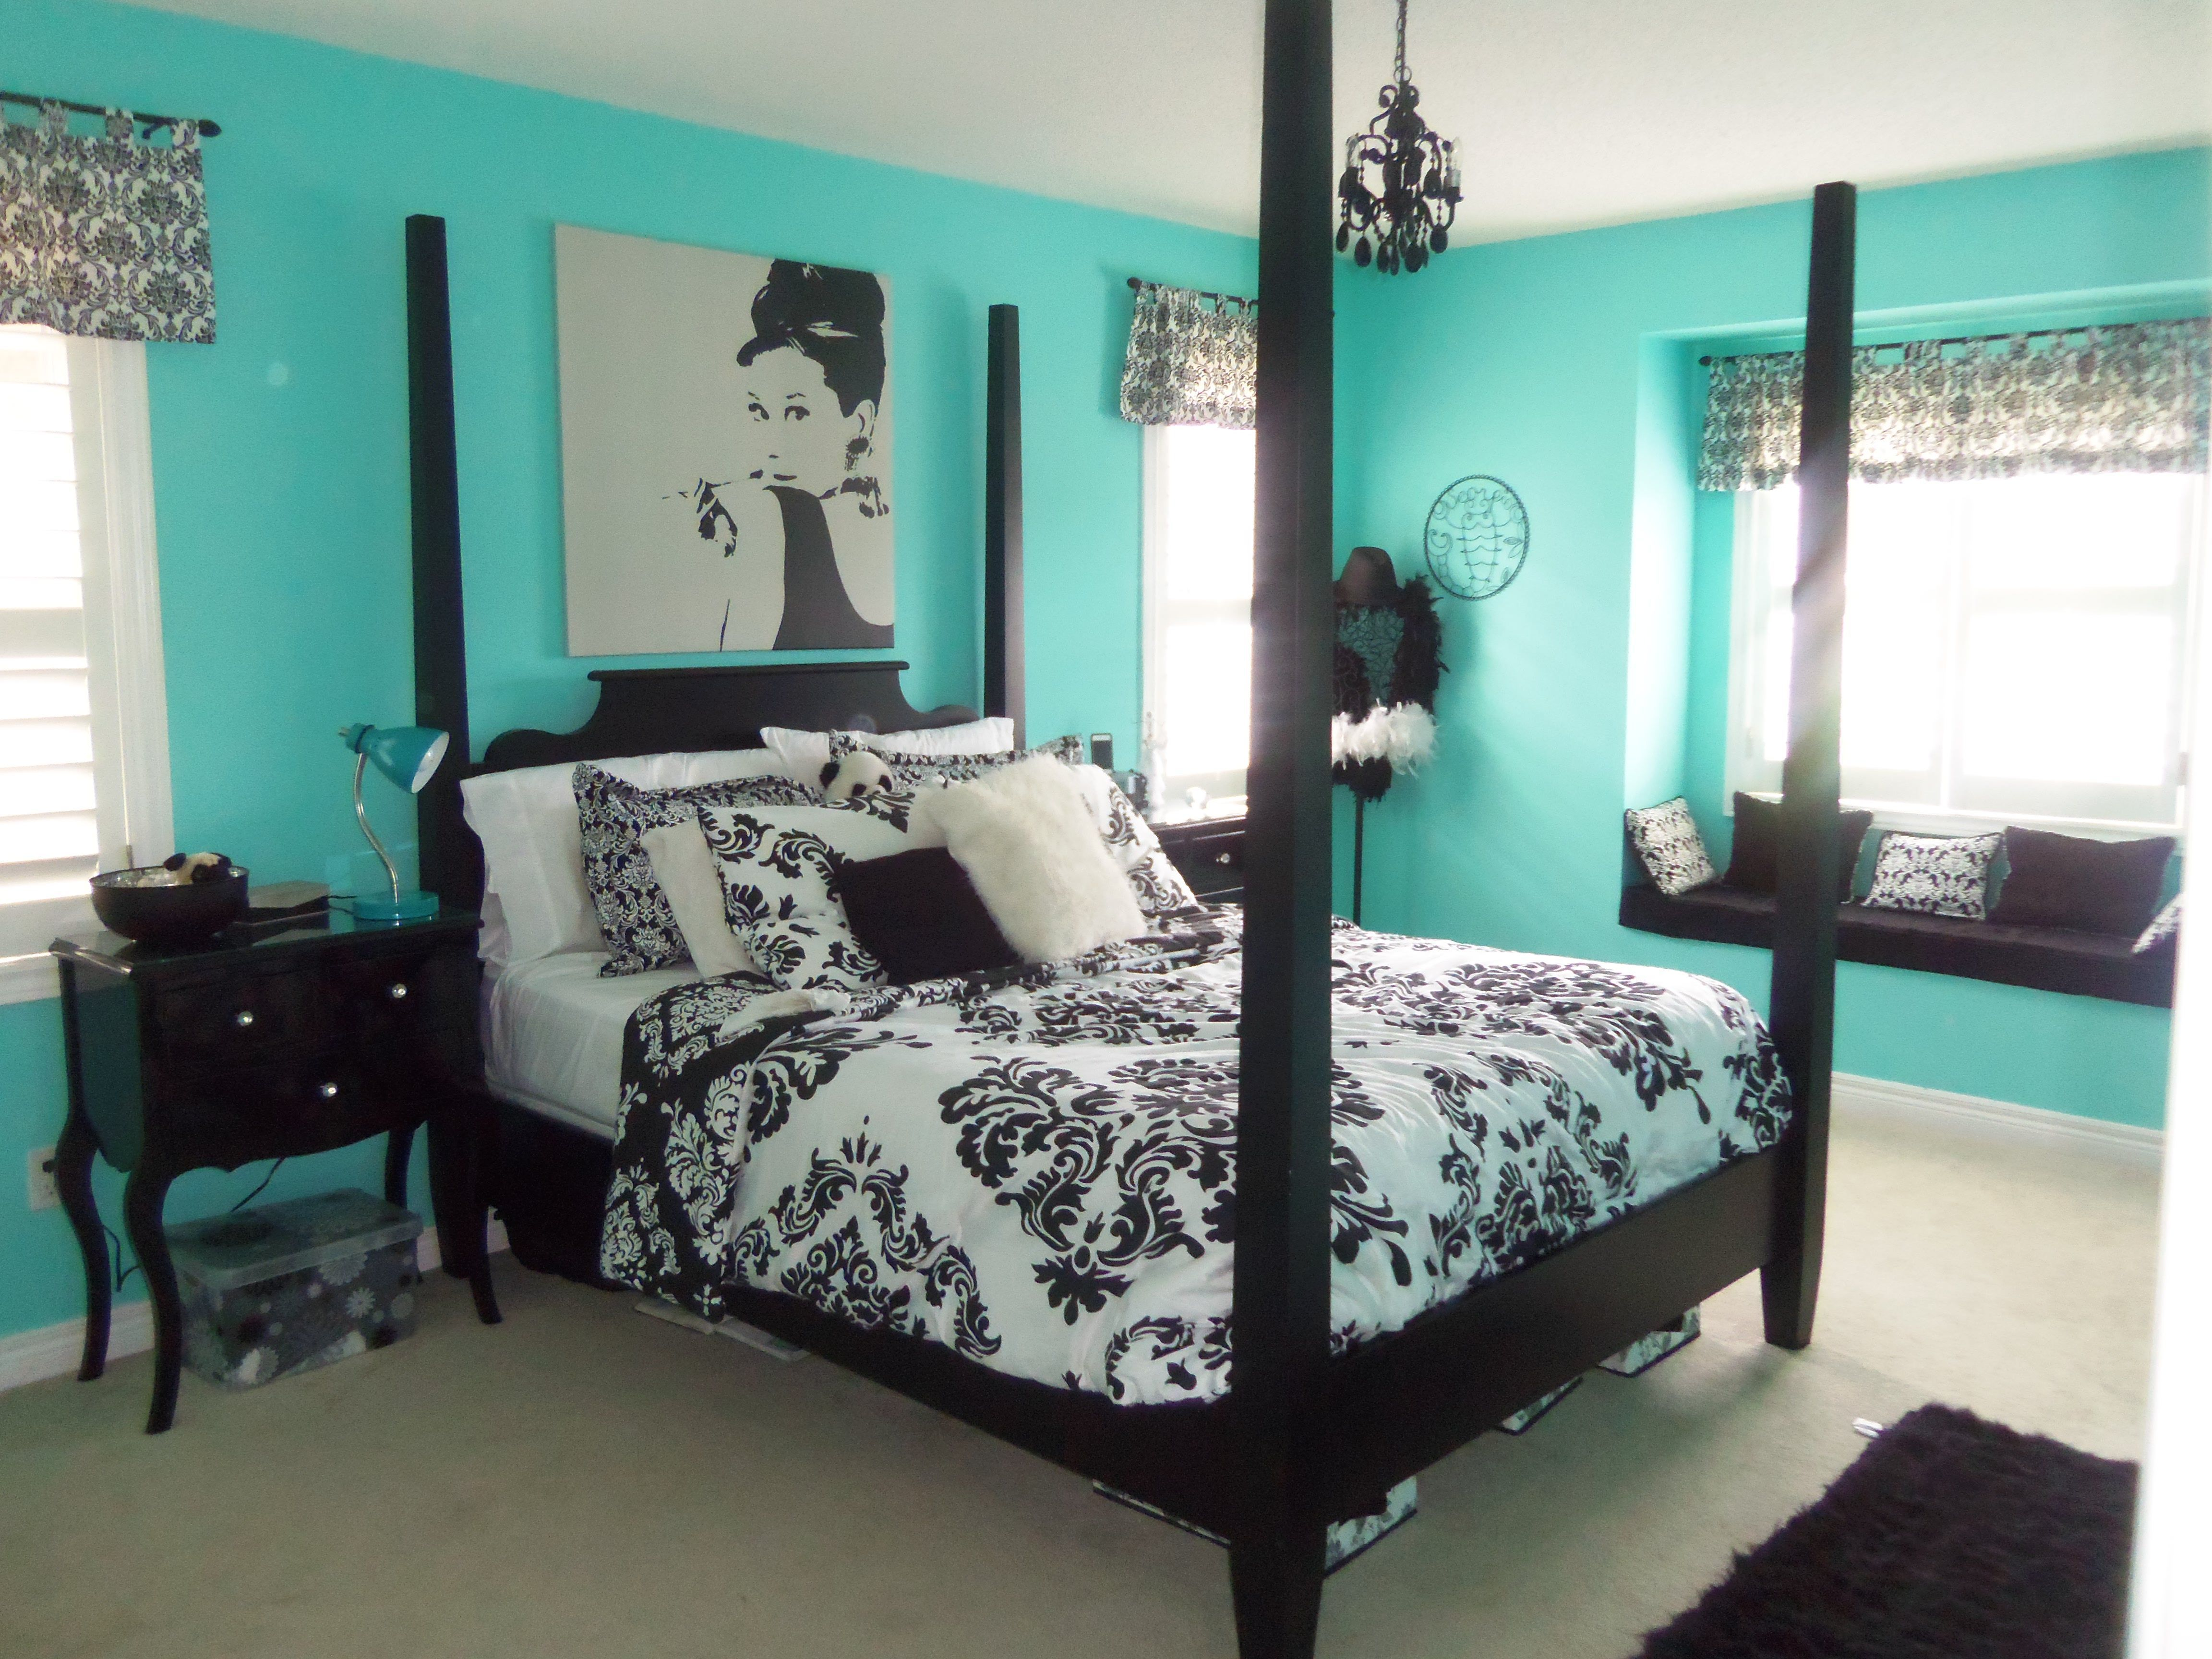 Bedroom With A Beautiful Green Or Teal Feature Accent Wall And